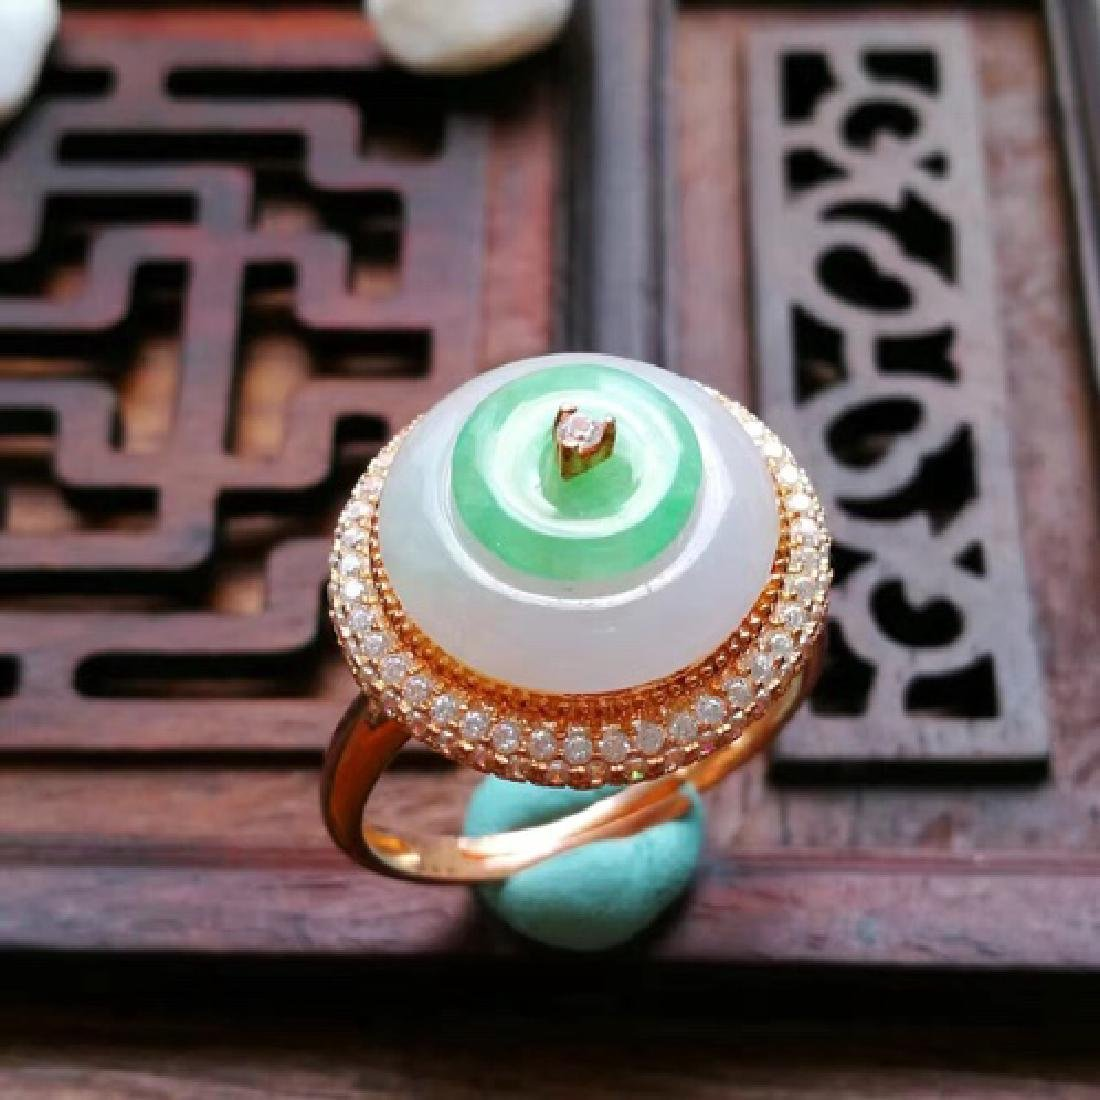 A NATURAL RING-SHAPED ICY JADEITE RING